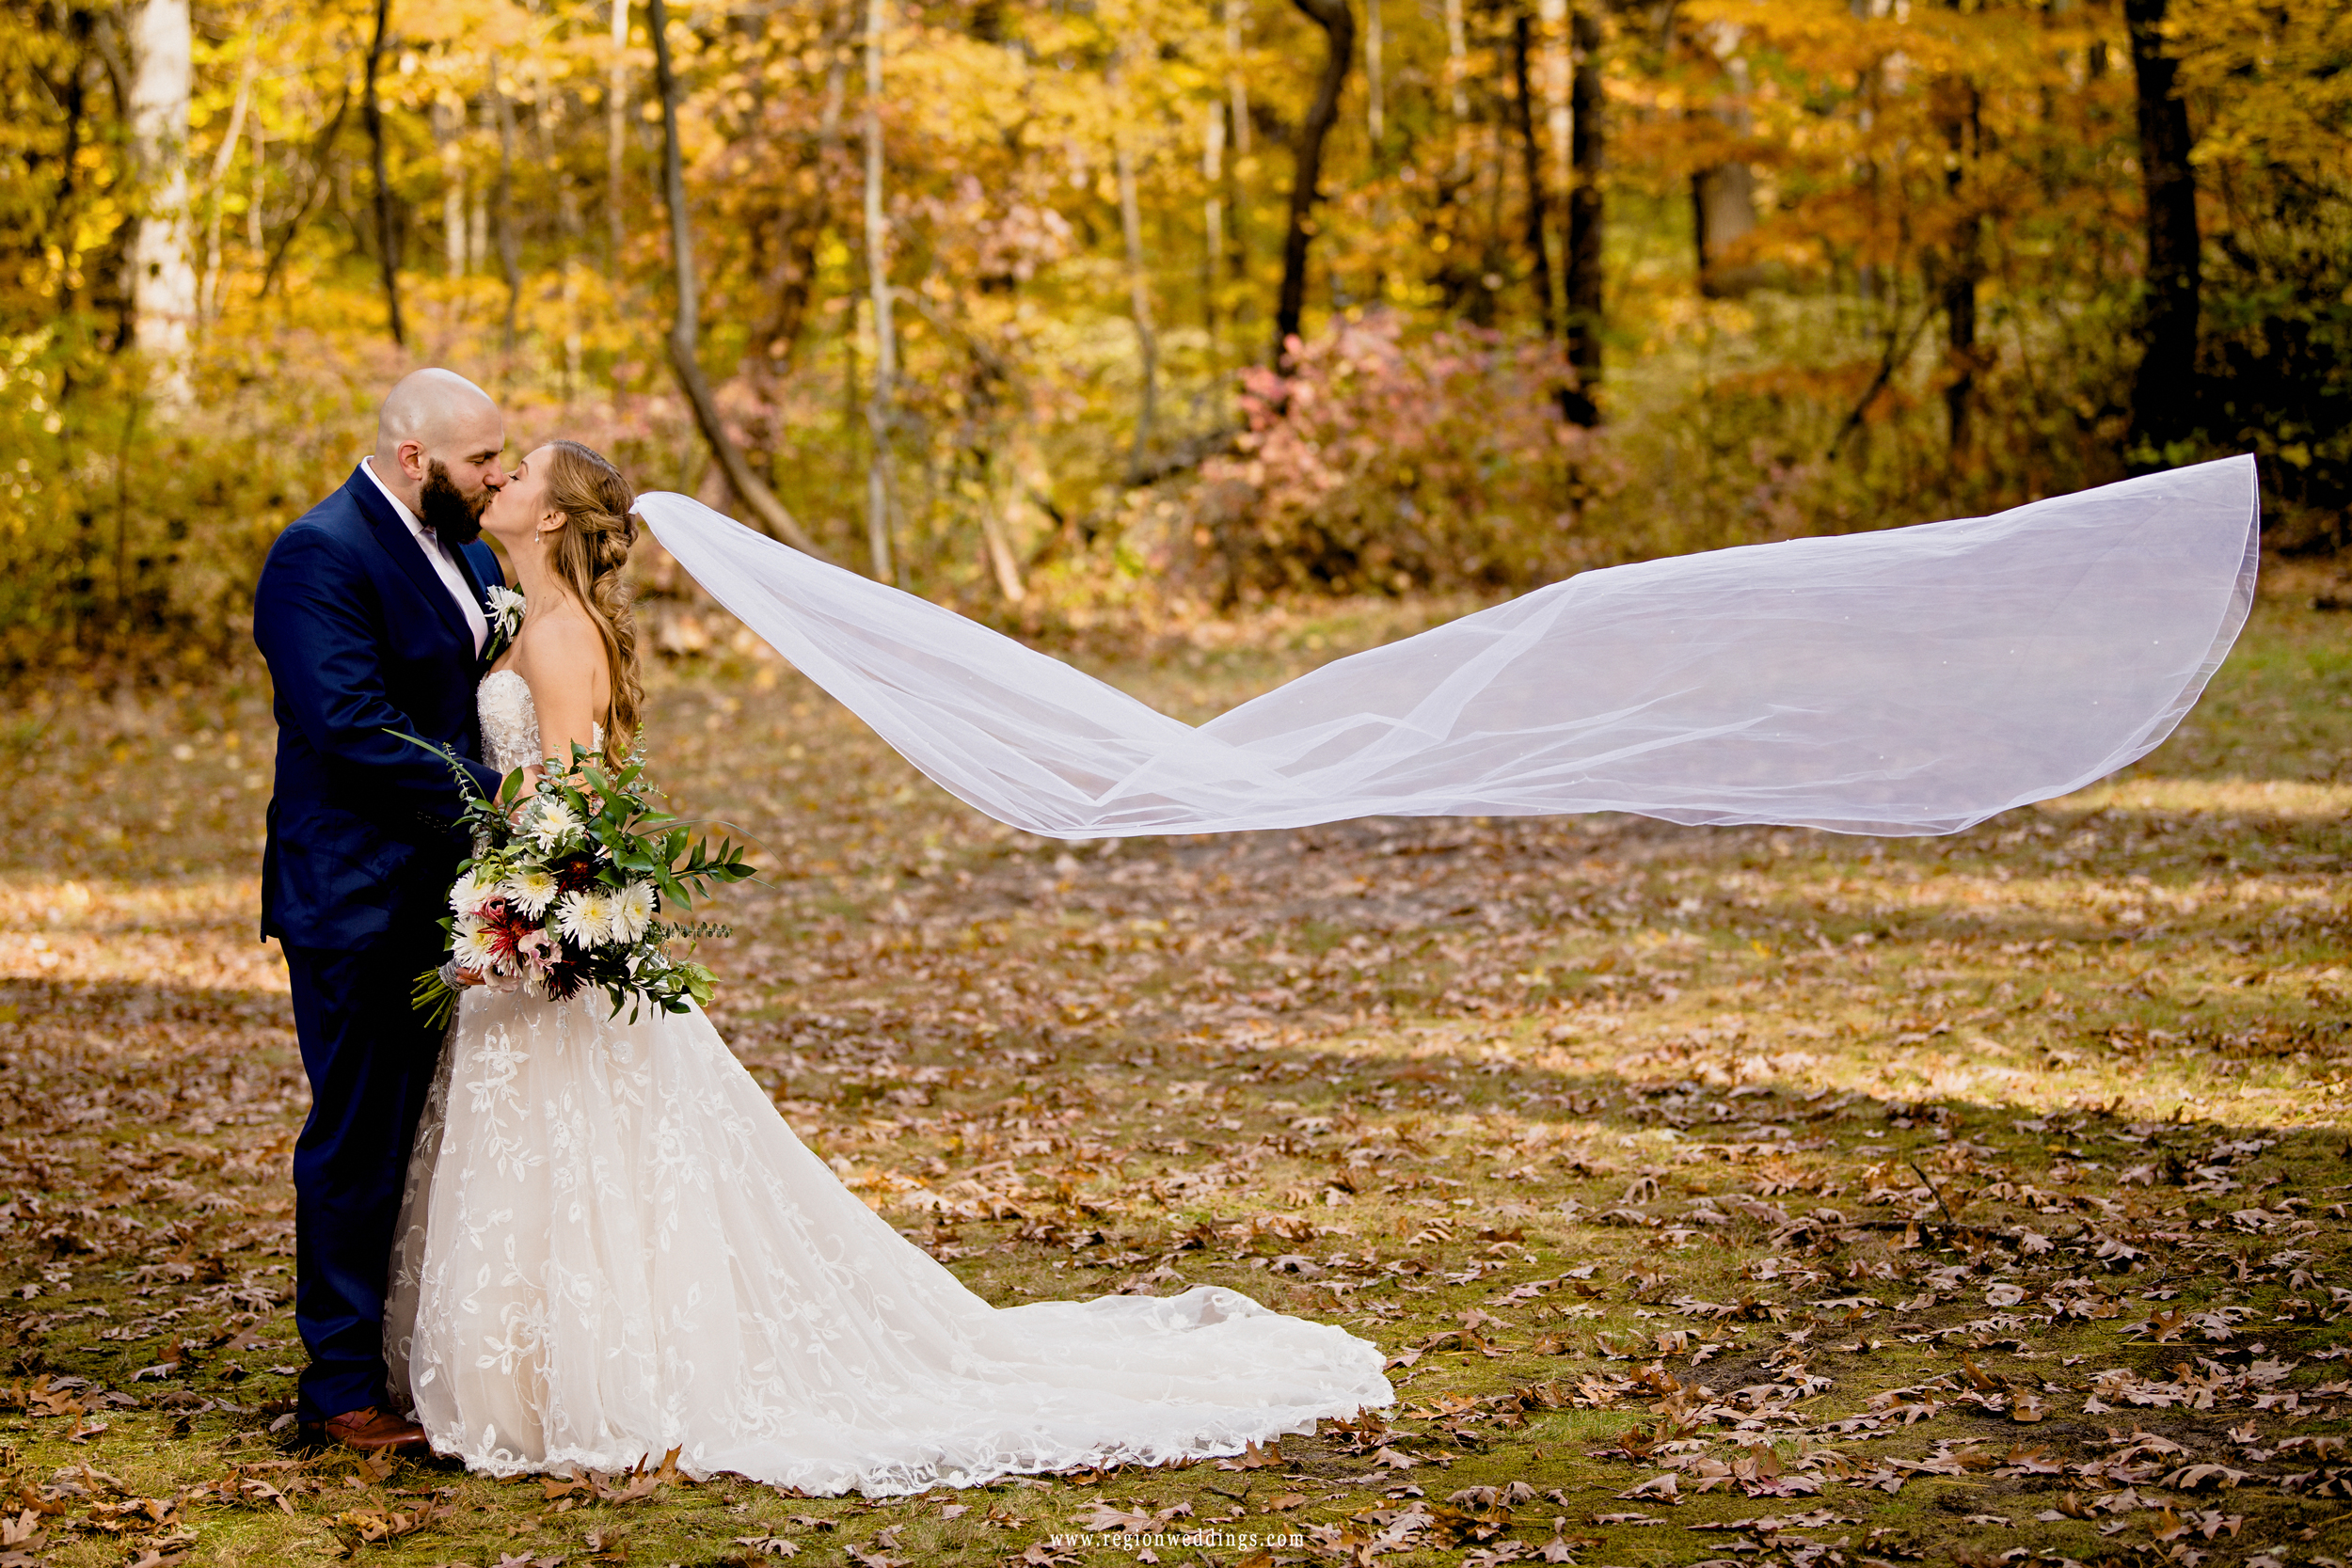 The bride's long veil flows into the air as her groom kisses her.